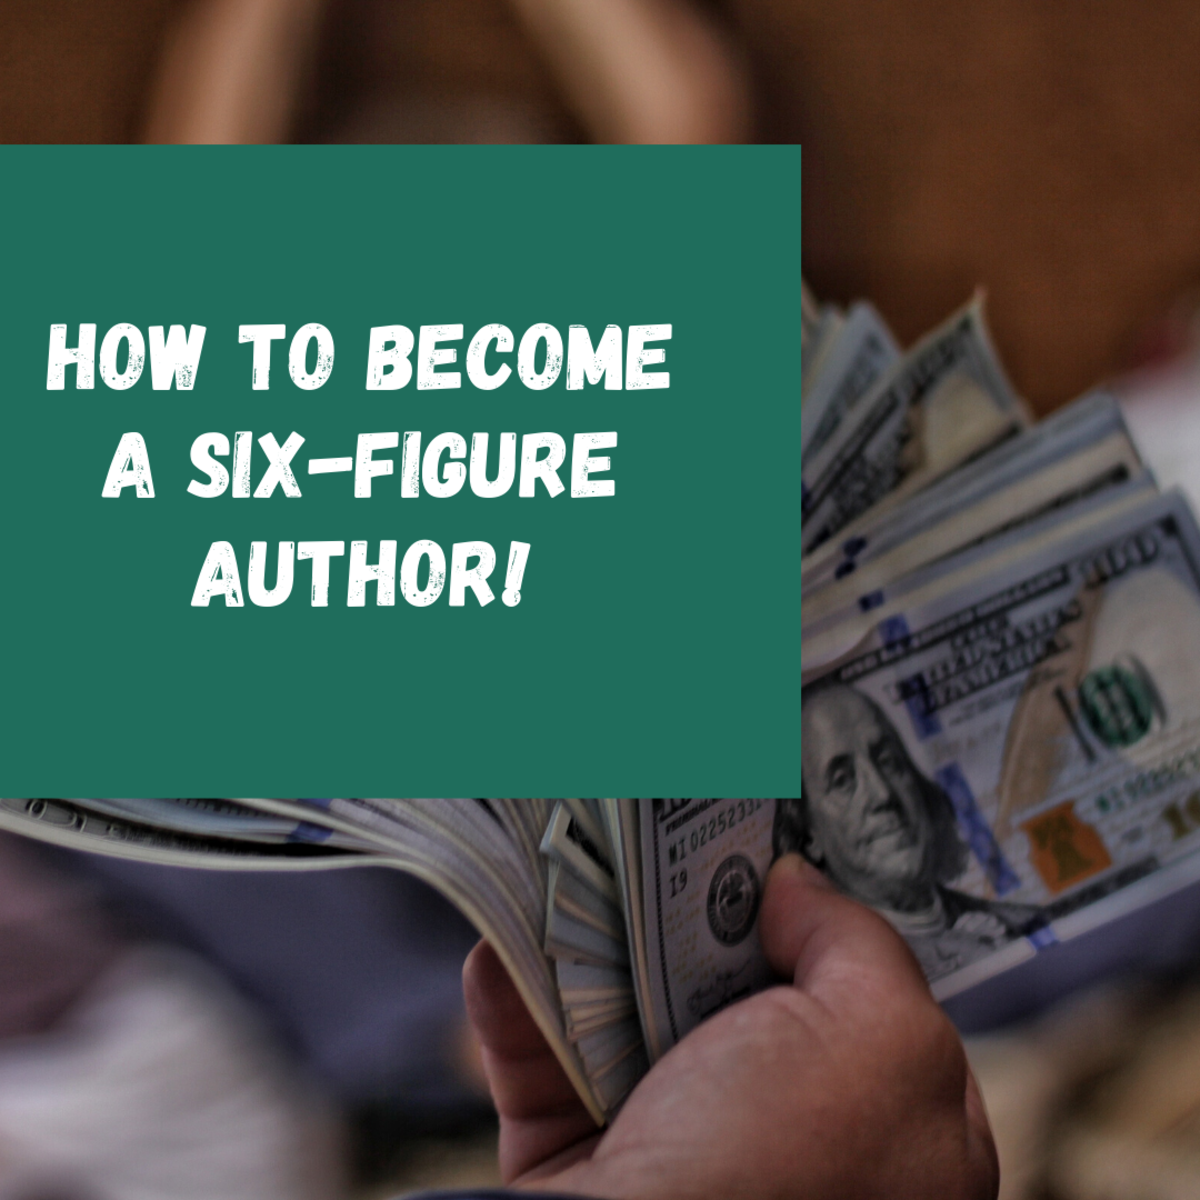 How to Become a Six-Figure Author in 5 Simple Steps